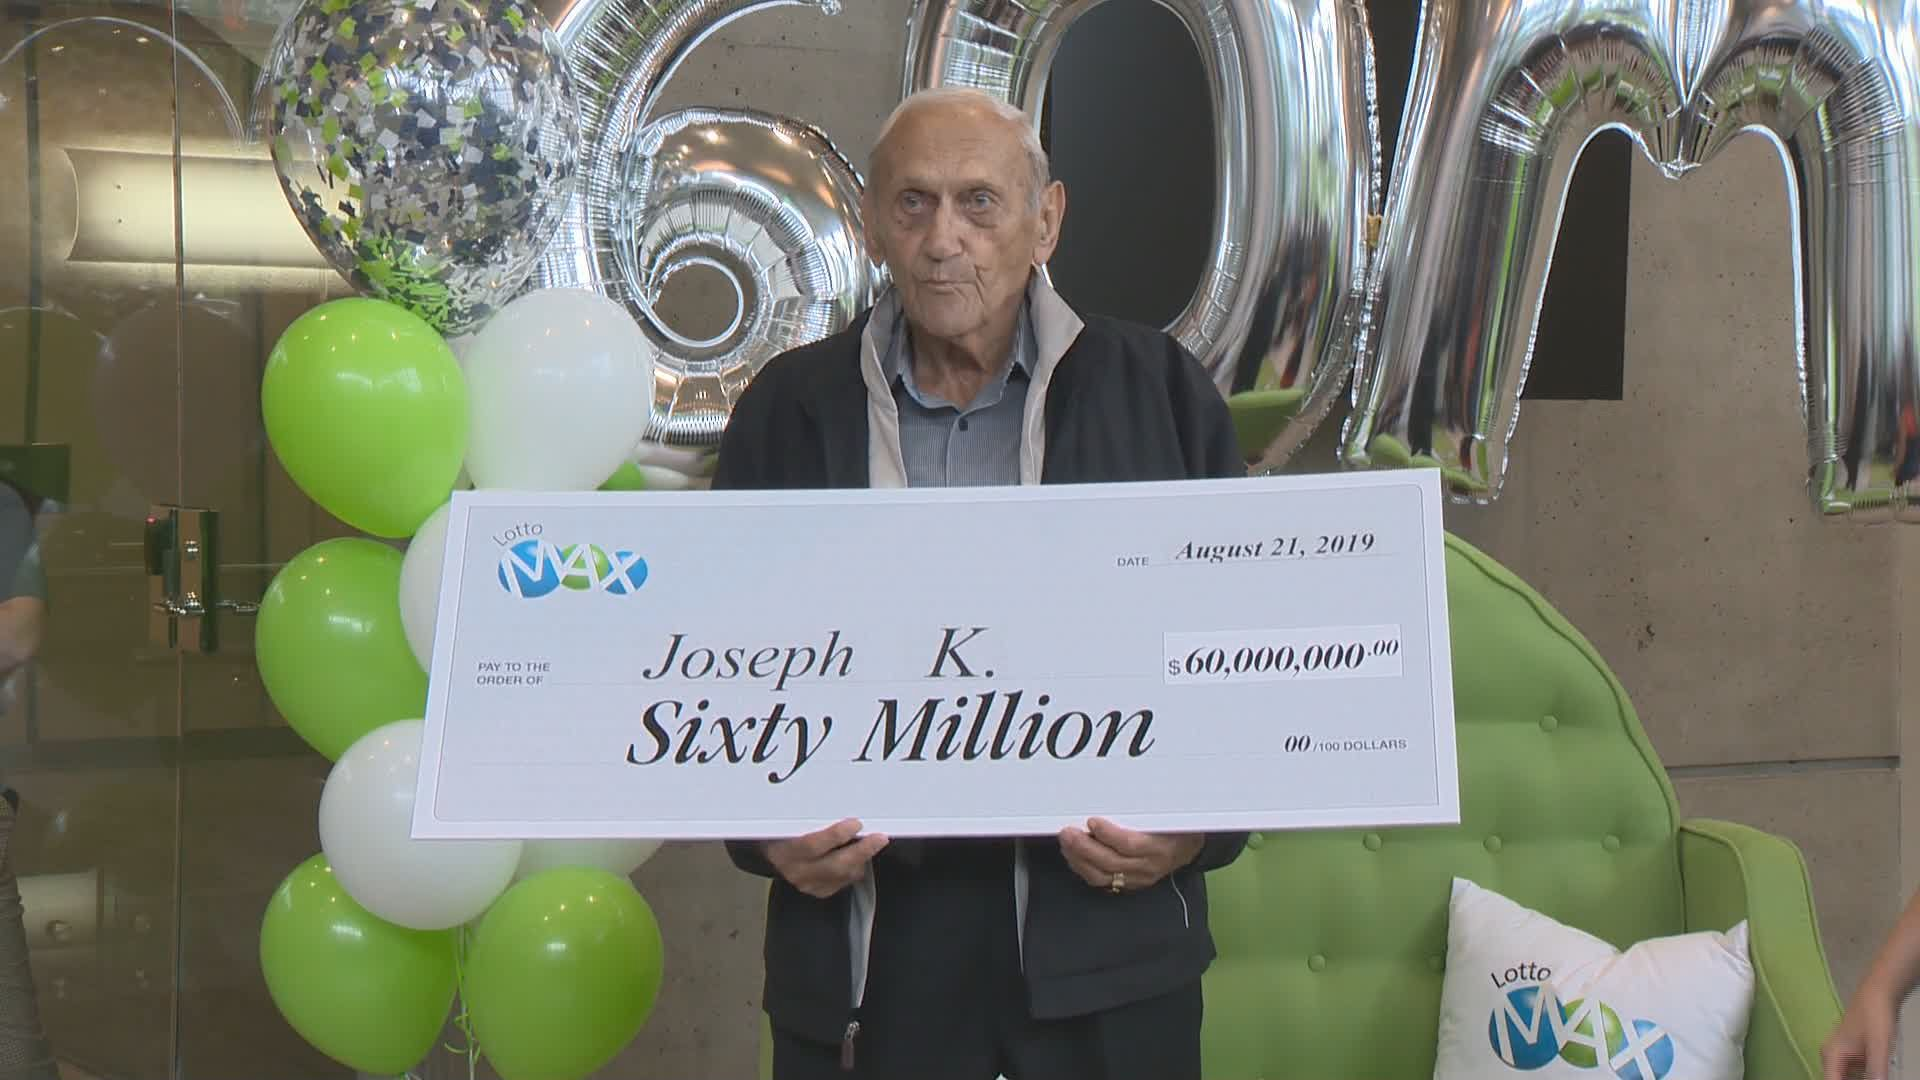 Richmond's $60M Lotto victor is a retired fisherman